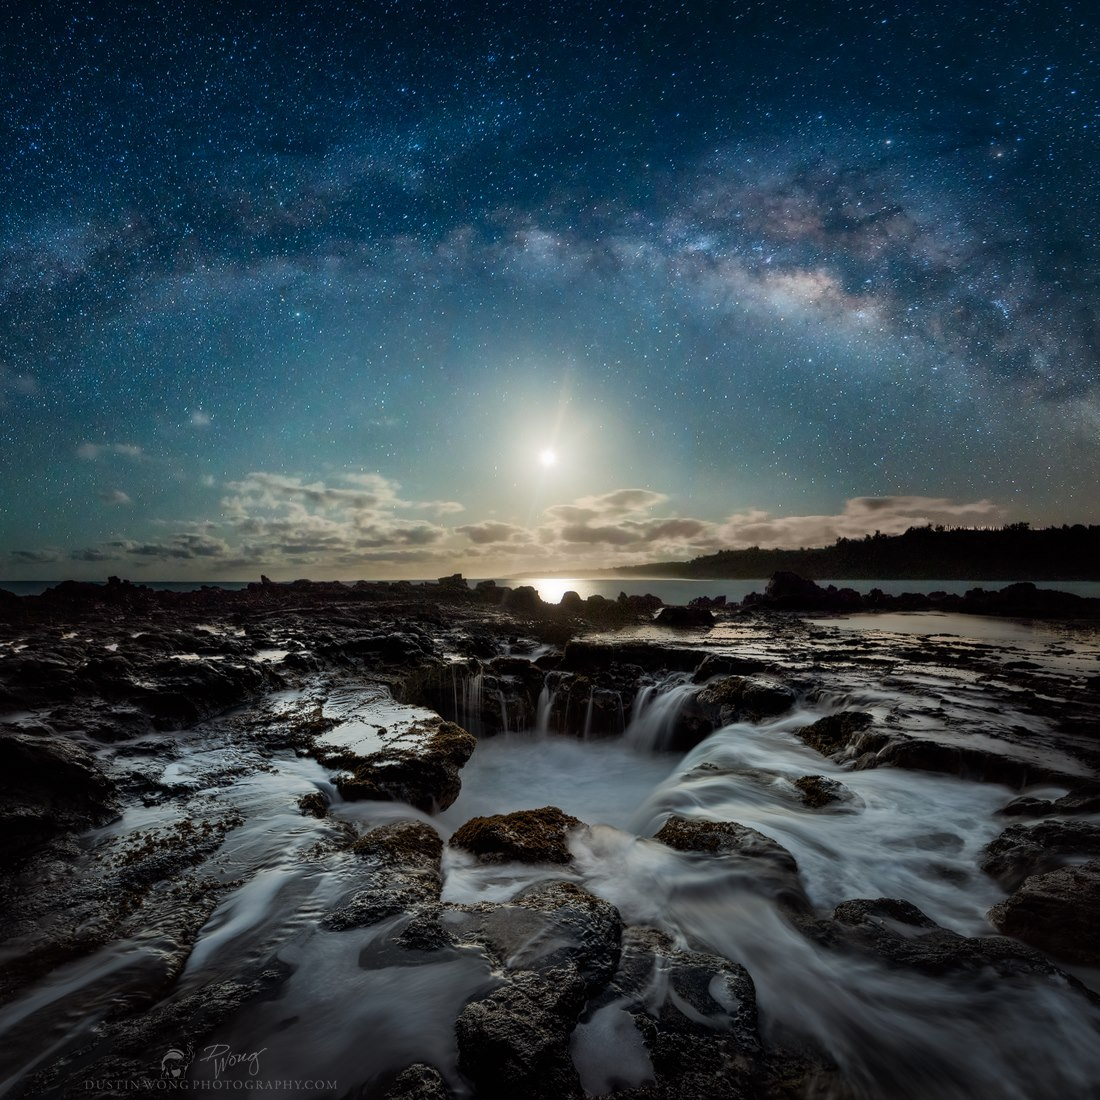 This is a personal favorite bc it represents the growth and refinement of my own post processing techniques this year. (At the beginning of the year I didn't know how to put it together). It is also special because the alignment of the moon and milky way along with the weather and wave conditions is unique and serendipitous. - Dustin Wong